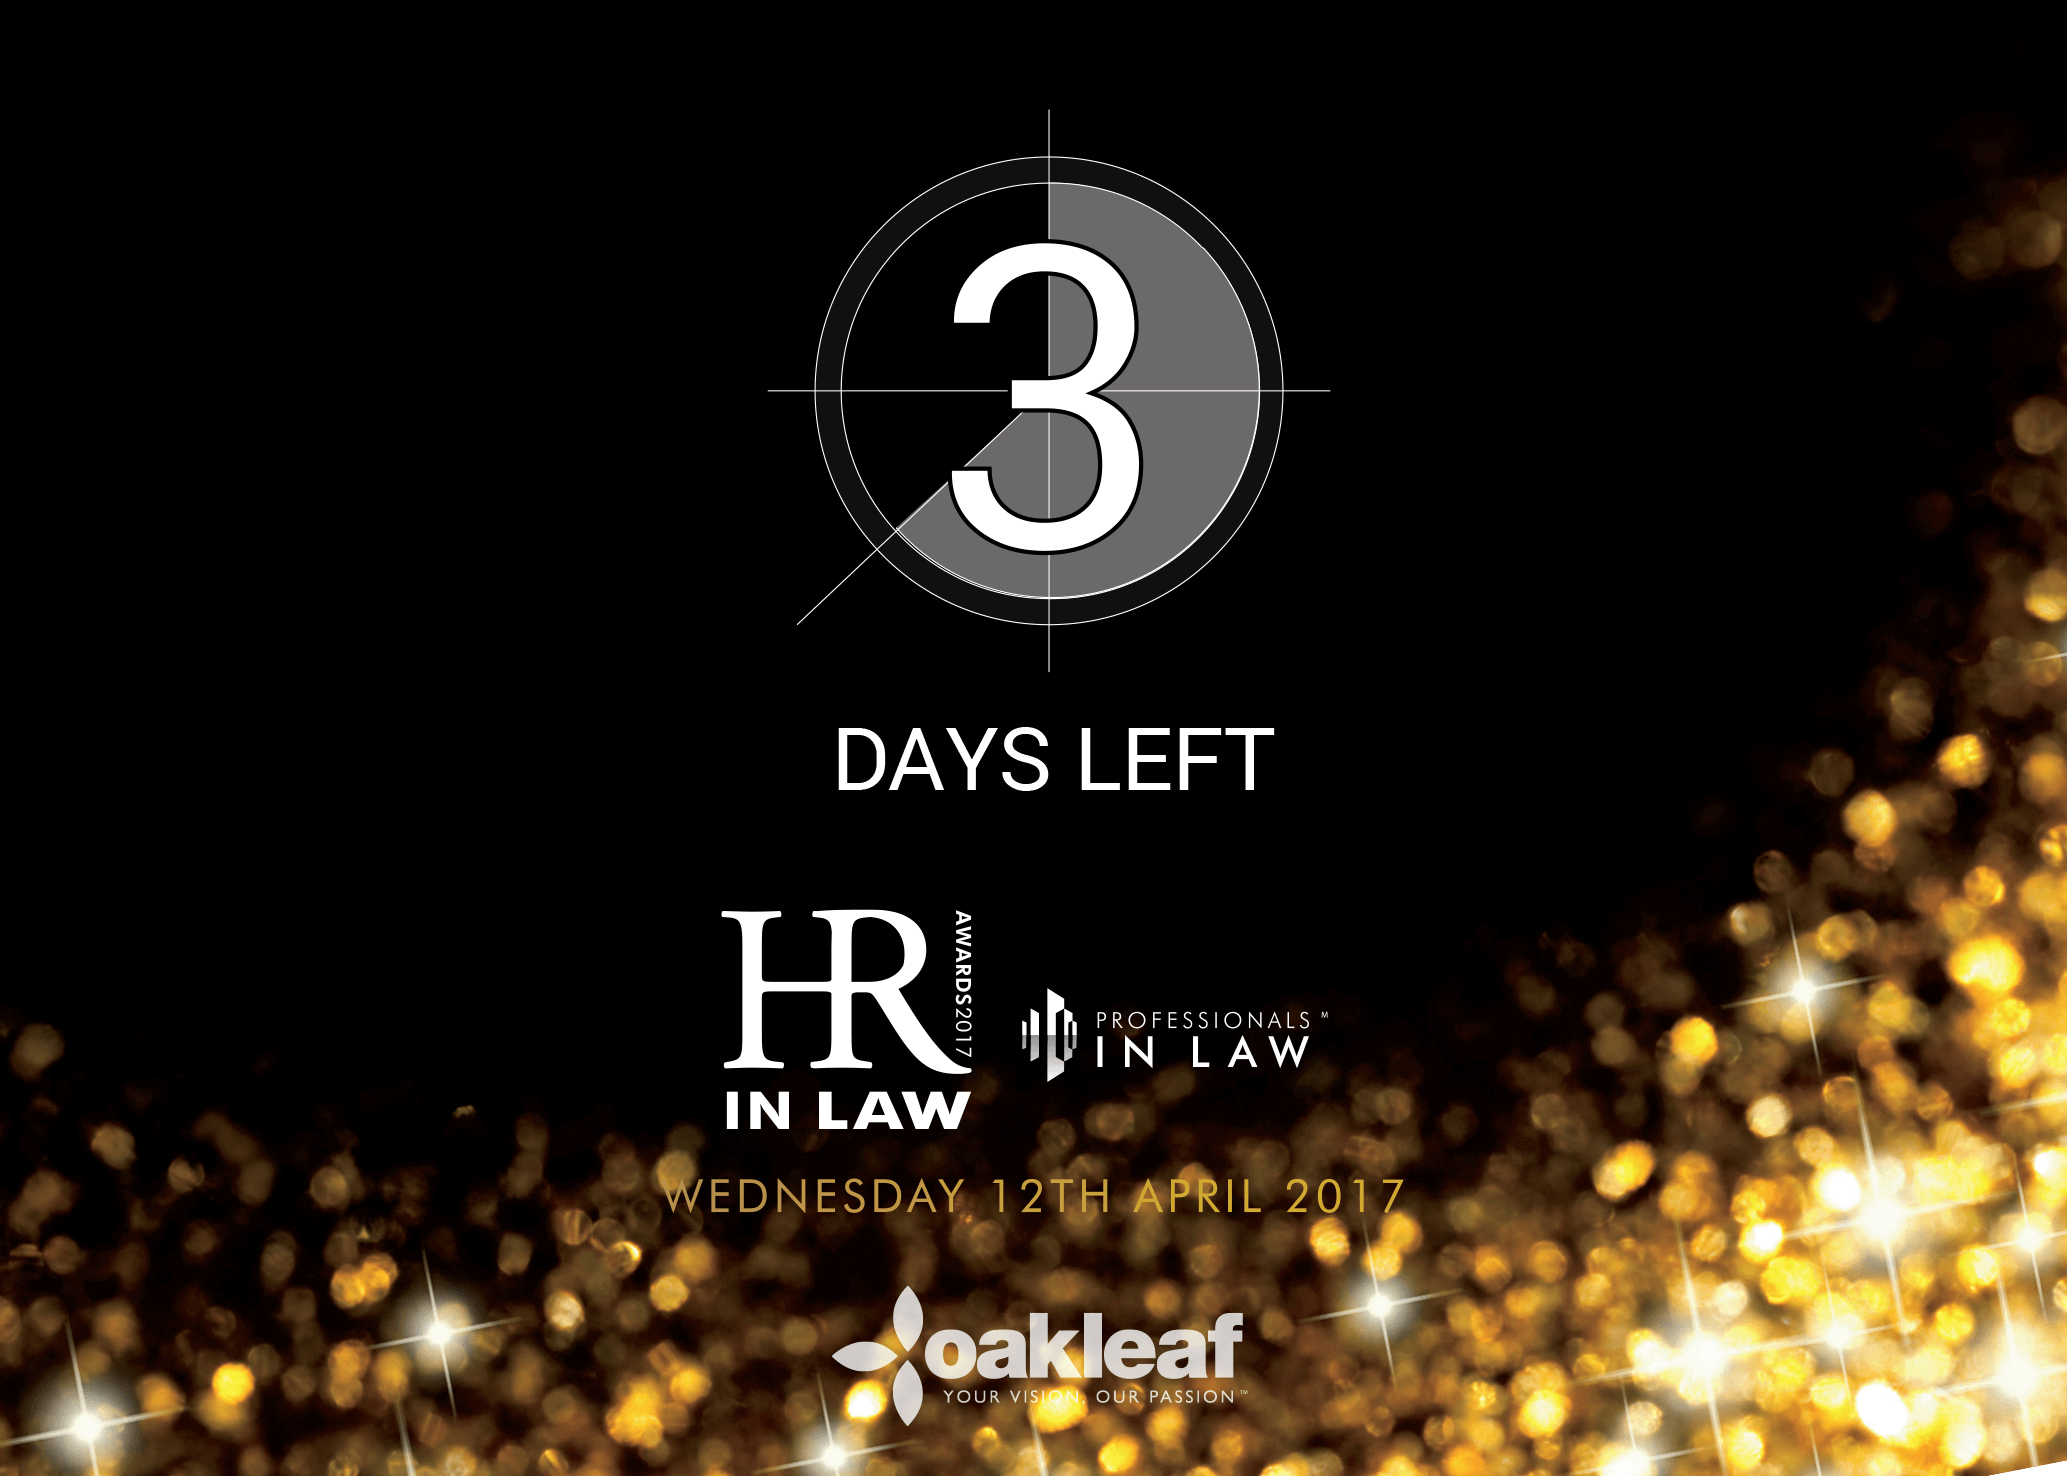 Only 3 Days Left To Nominate For The Hr In Law Awards